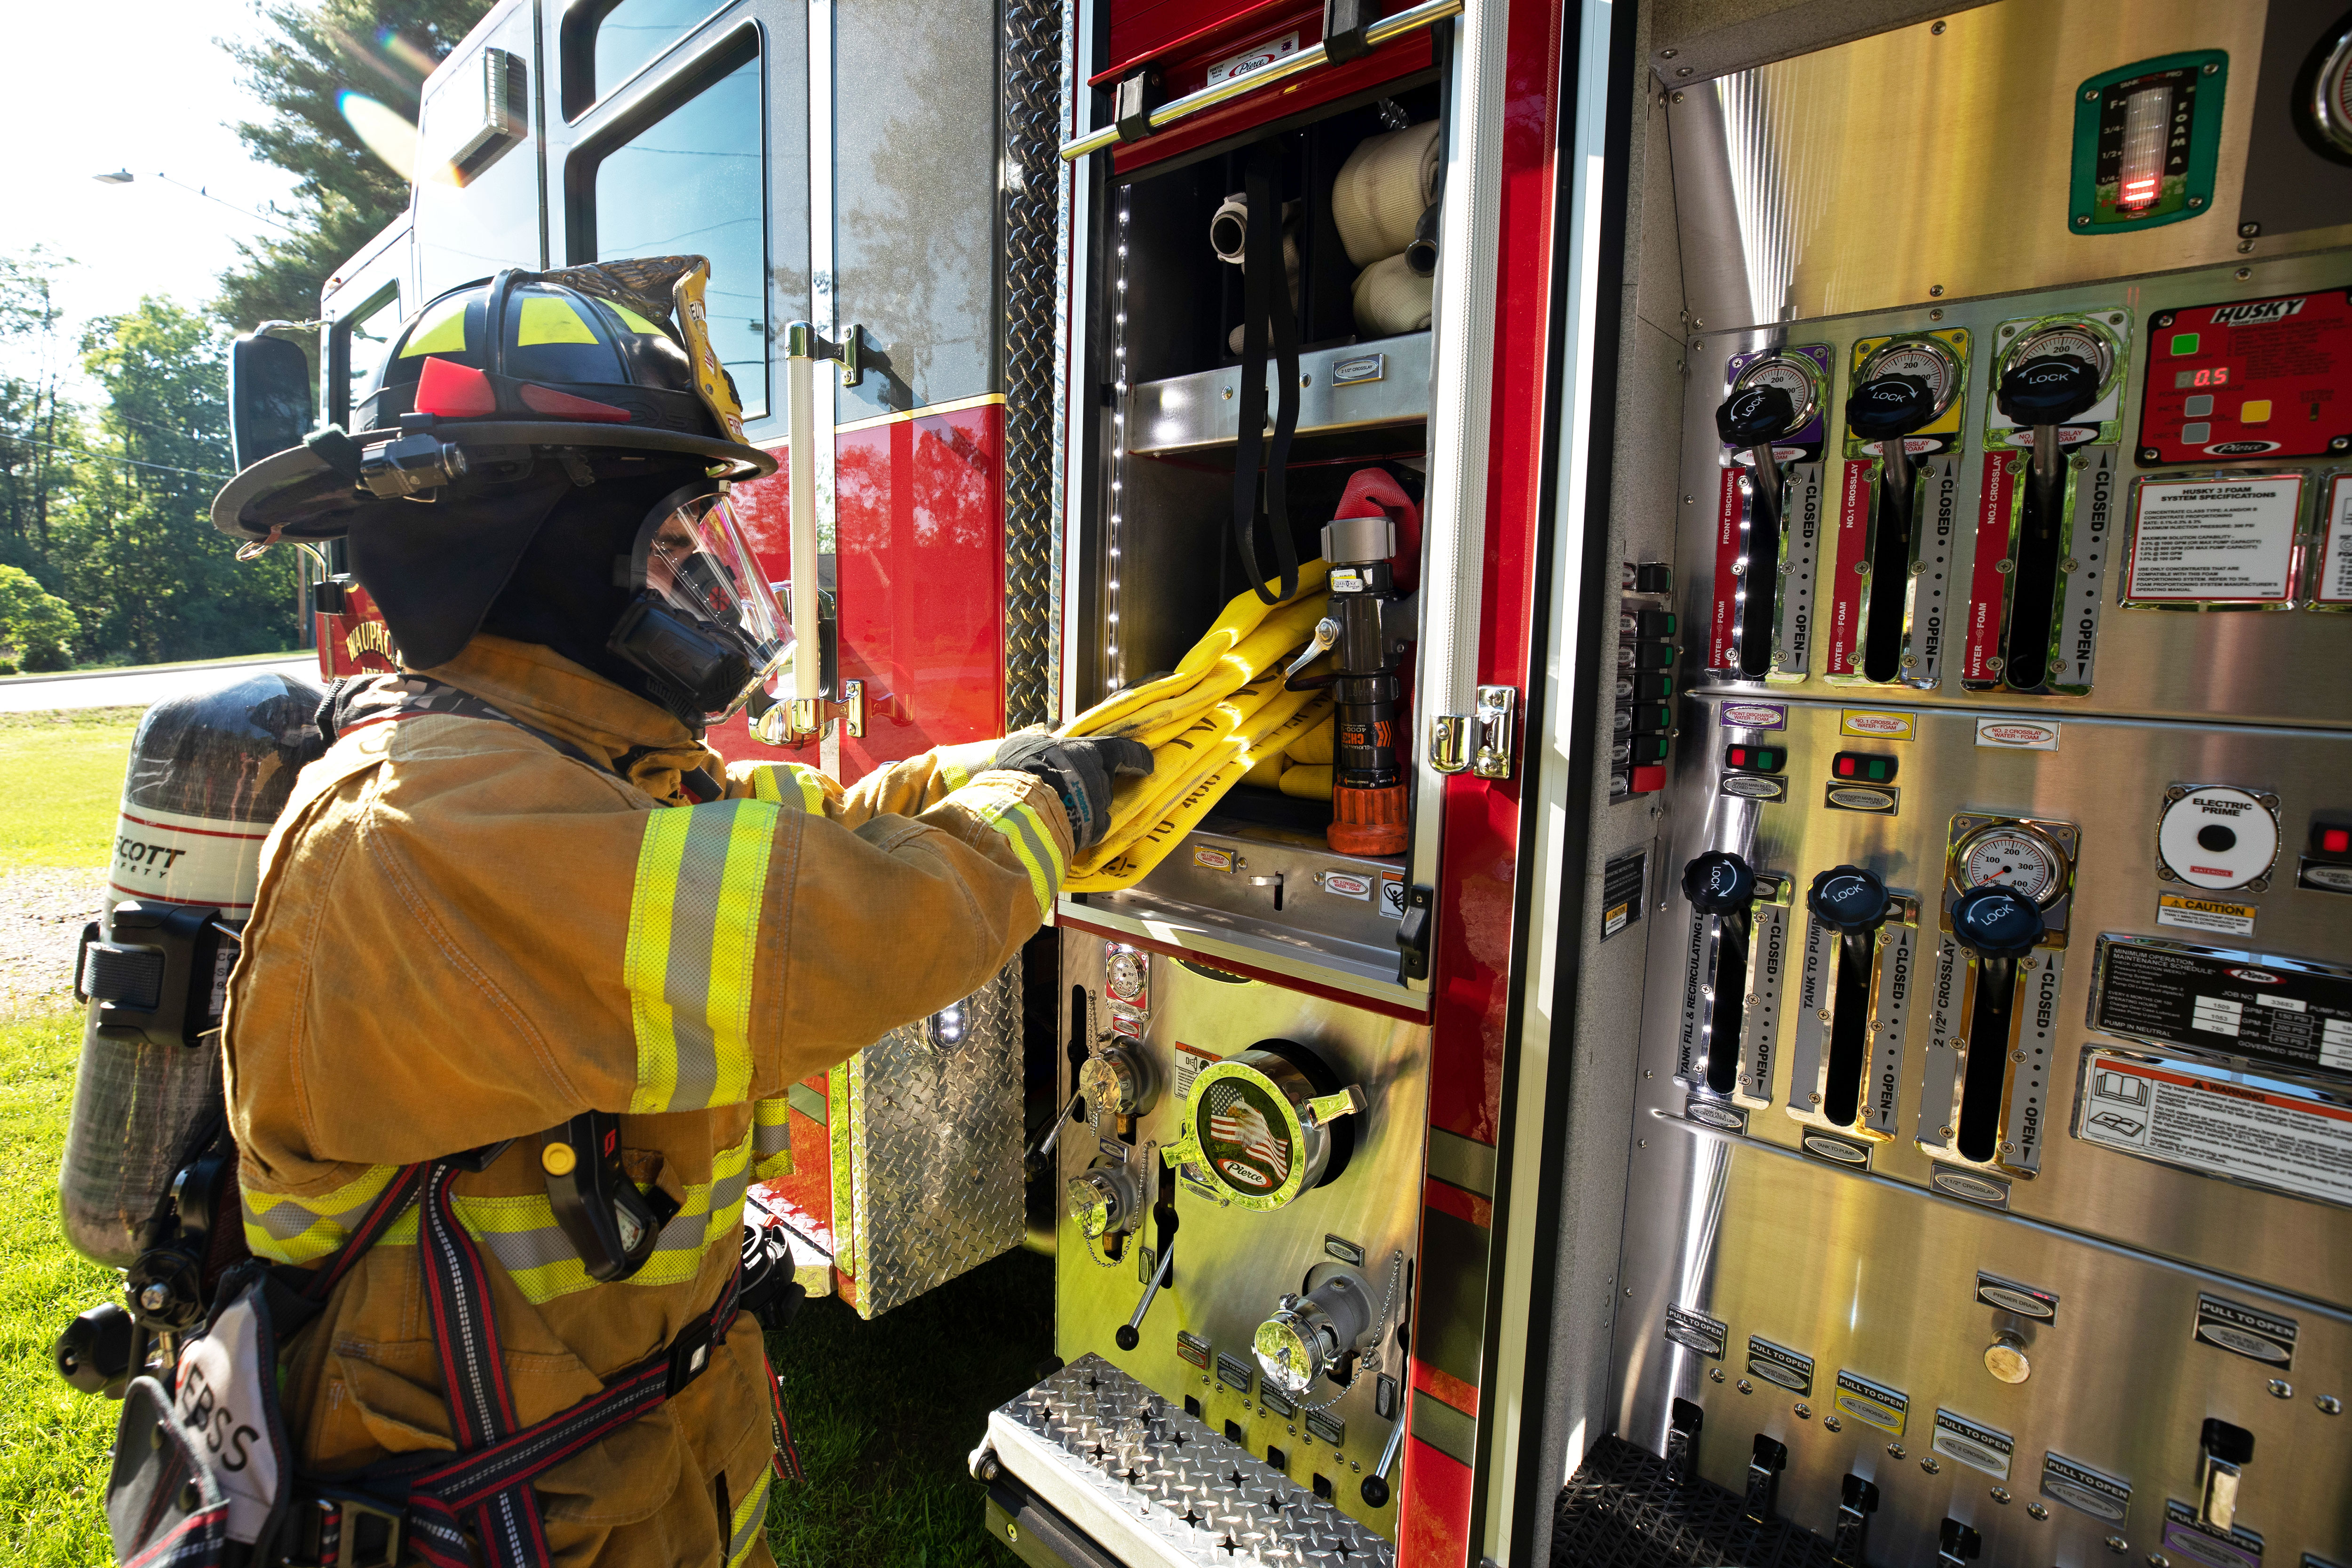 Firefighter Using Hose with PUC Pumper Fire Truck